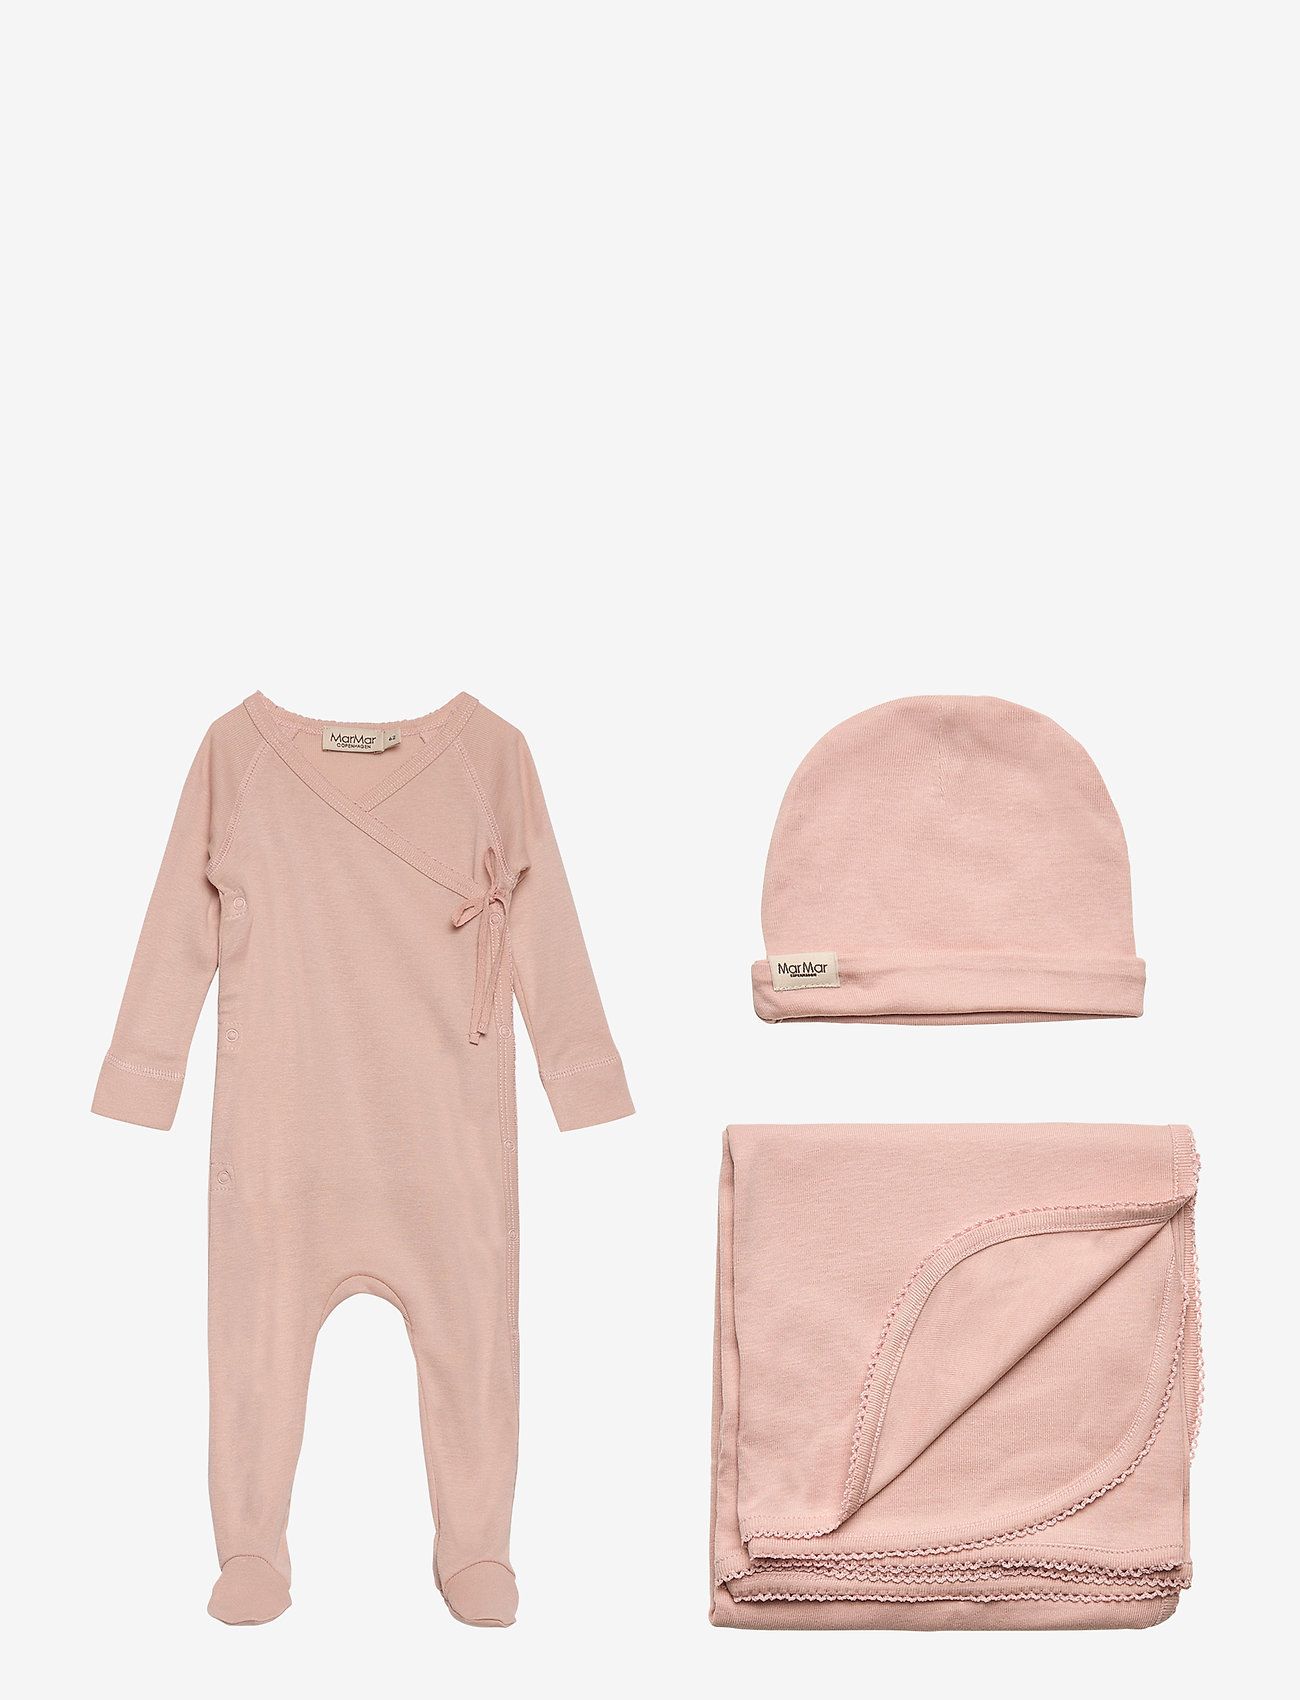 MarMar Cph - New Born Gift Box - suit, hat and blanket - langärmelig - rose - 0